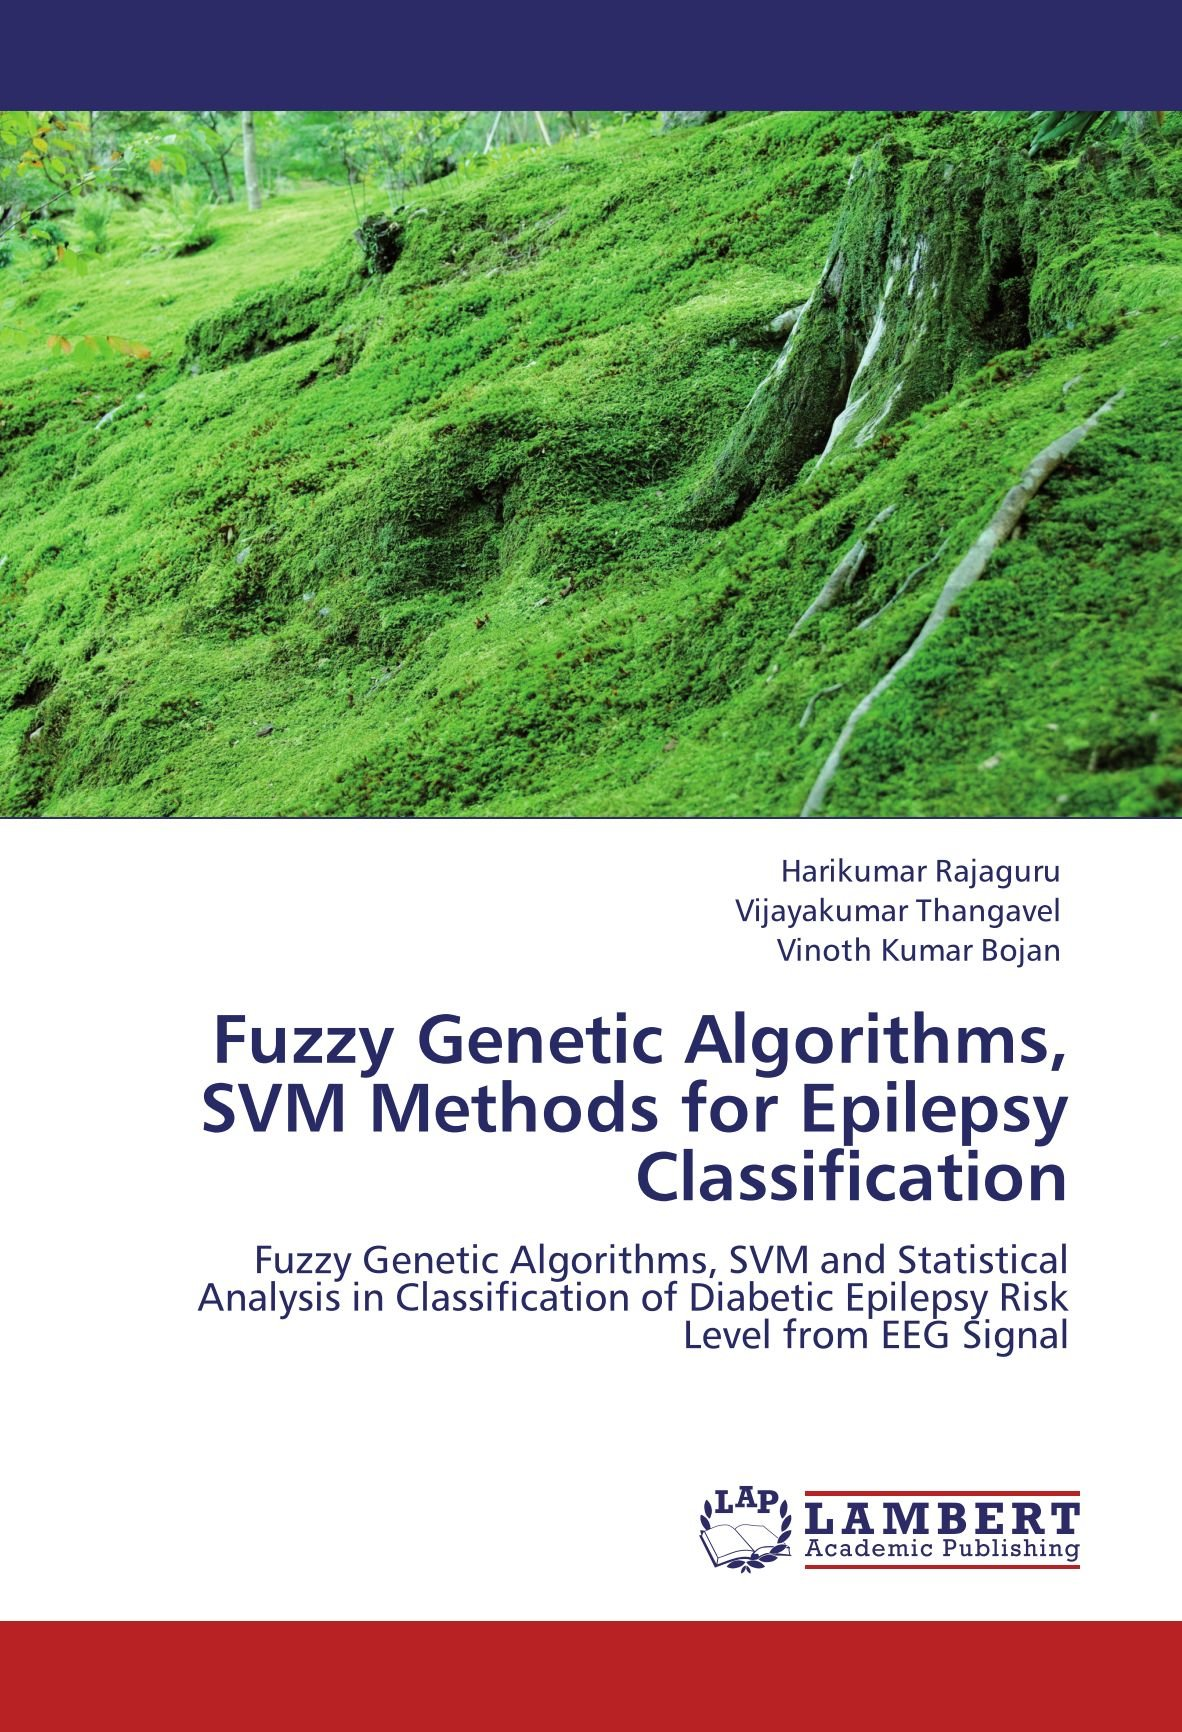 Read Online Fuzzy Genetic Algorithms, SVM Methods for Epilepsy Classification: Fuzzy Genetic Algorithms, SVM and Statistical Analysis in Classification of Diabetic Epilepsy Risk Level from EEG Signal PDF